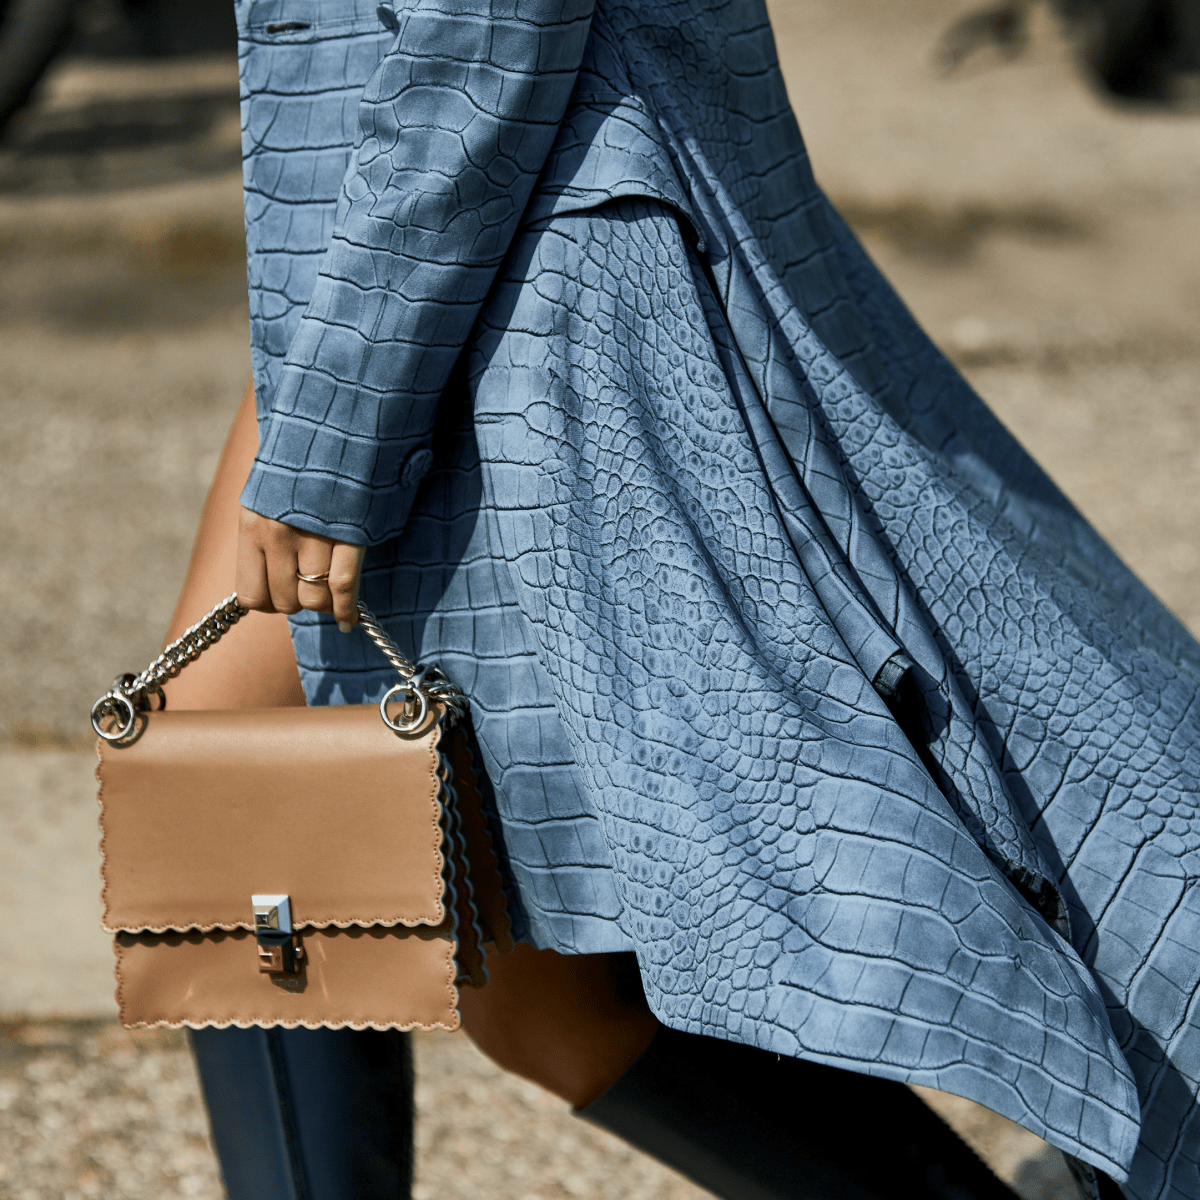 19 Tan Handbags That Will Soon Become Your Favorite Wardrobe Item - Fashionista